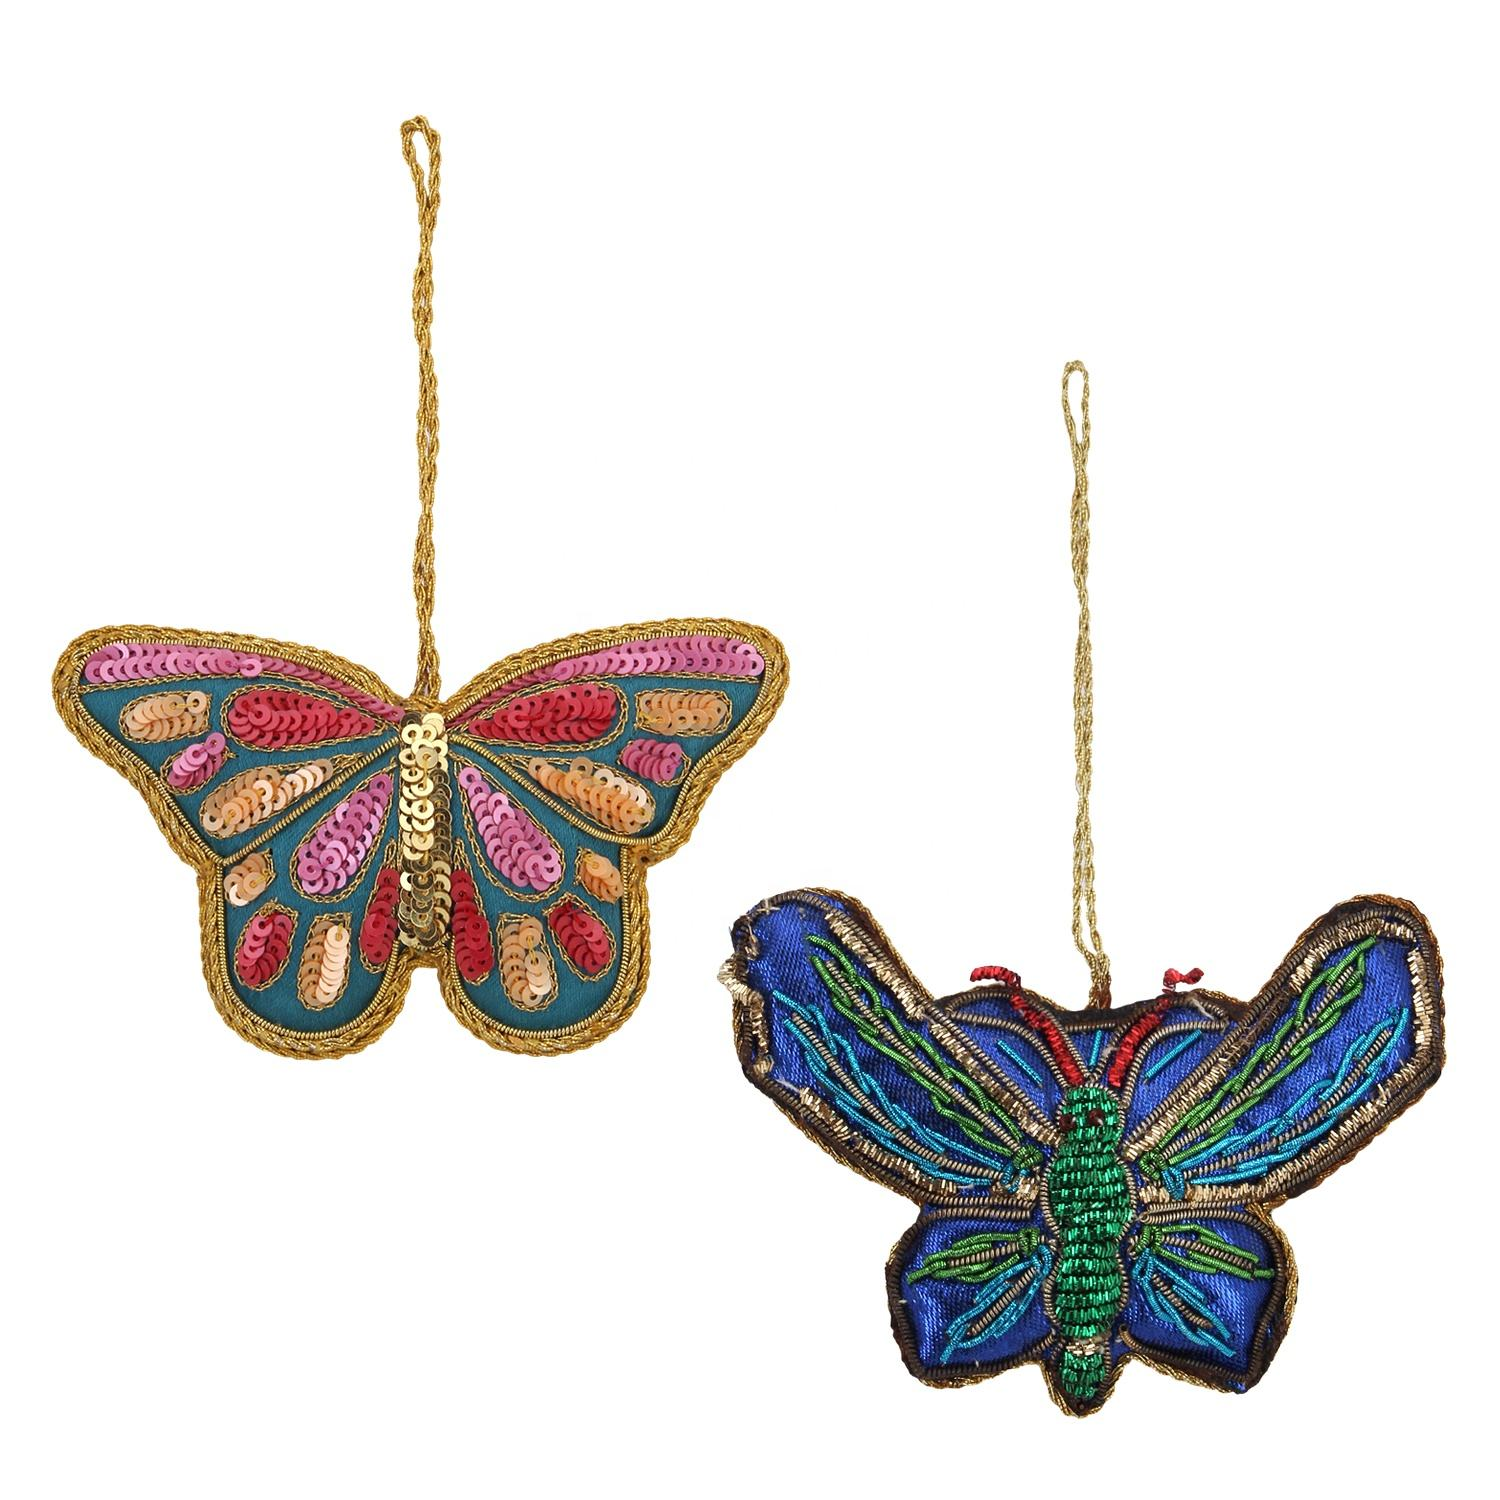 Butterfly Shape Christmas Tree Decorations gift items Hanging Ornament